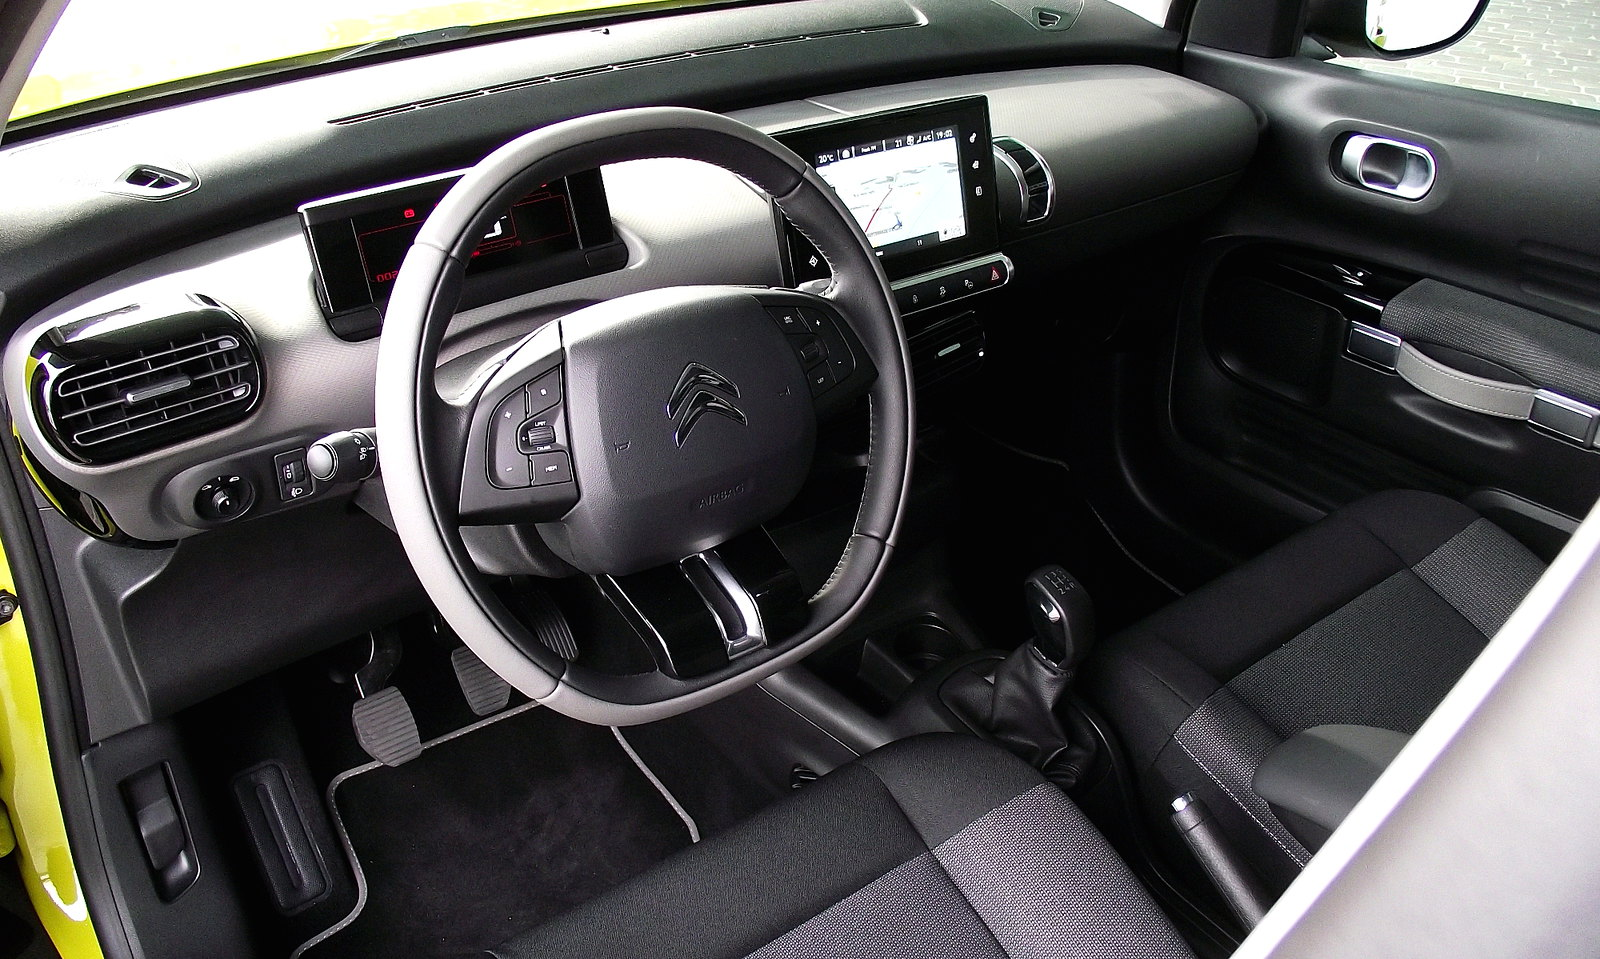 2014 citroen c4 cactus feel edition puretech e thp 110 interieur innenraum cockpit flickr. Black Bedroom Furniture Sets. Home Design Ideas